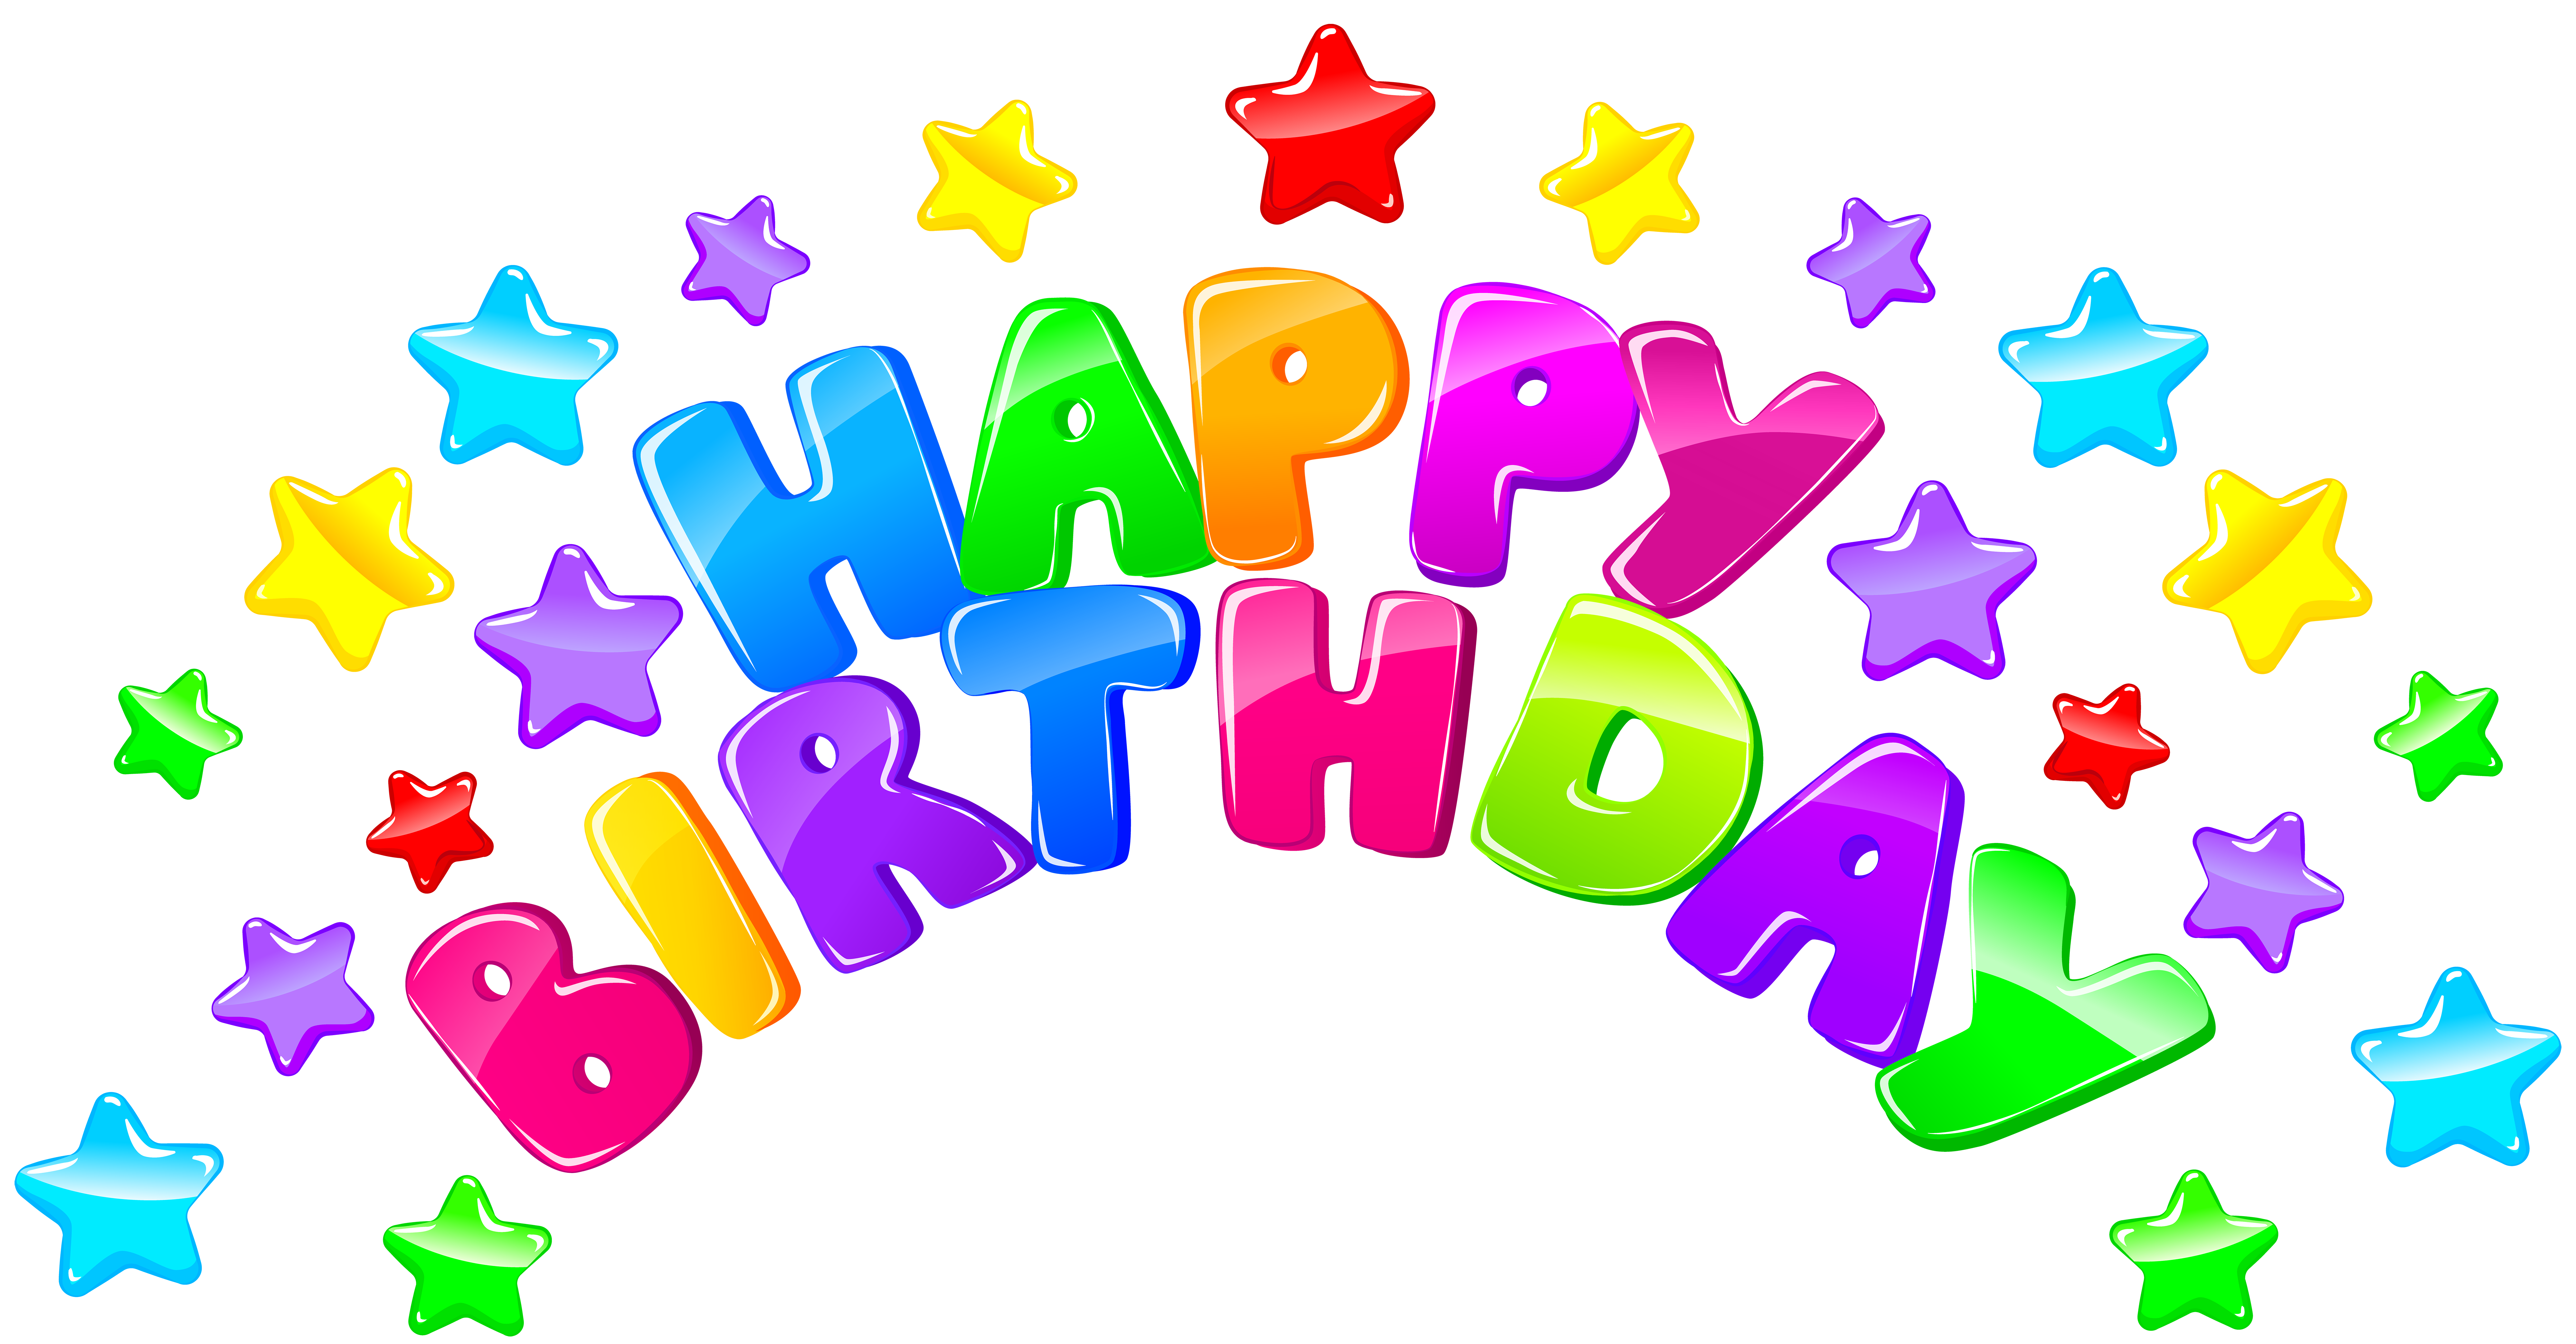 Happy Birthday Decor with Stars PNG Clip Art Image.